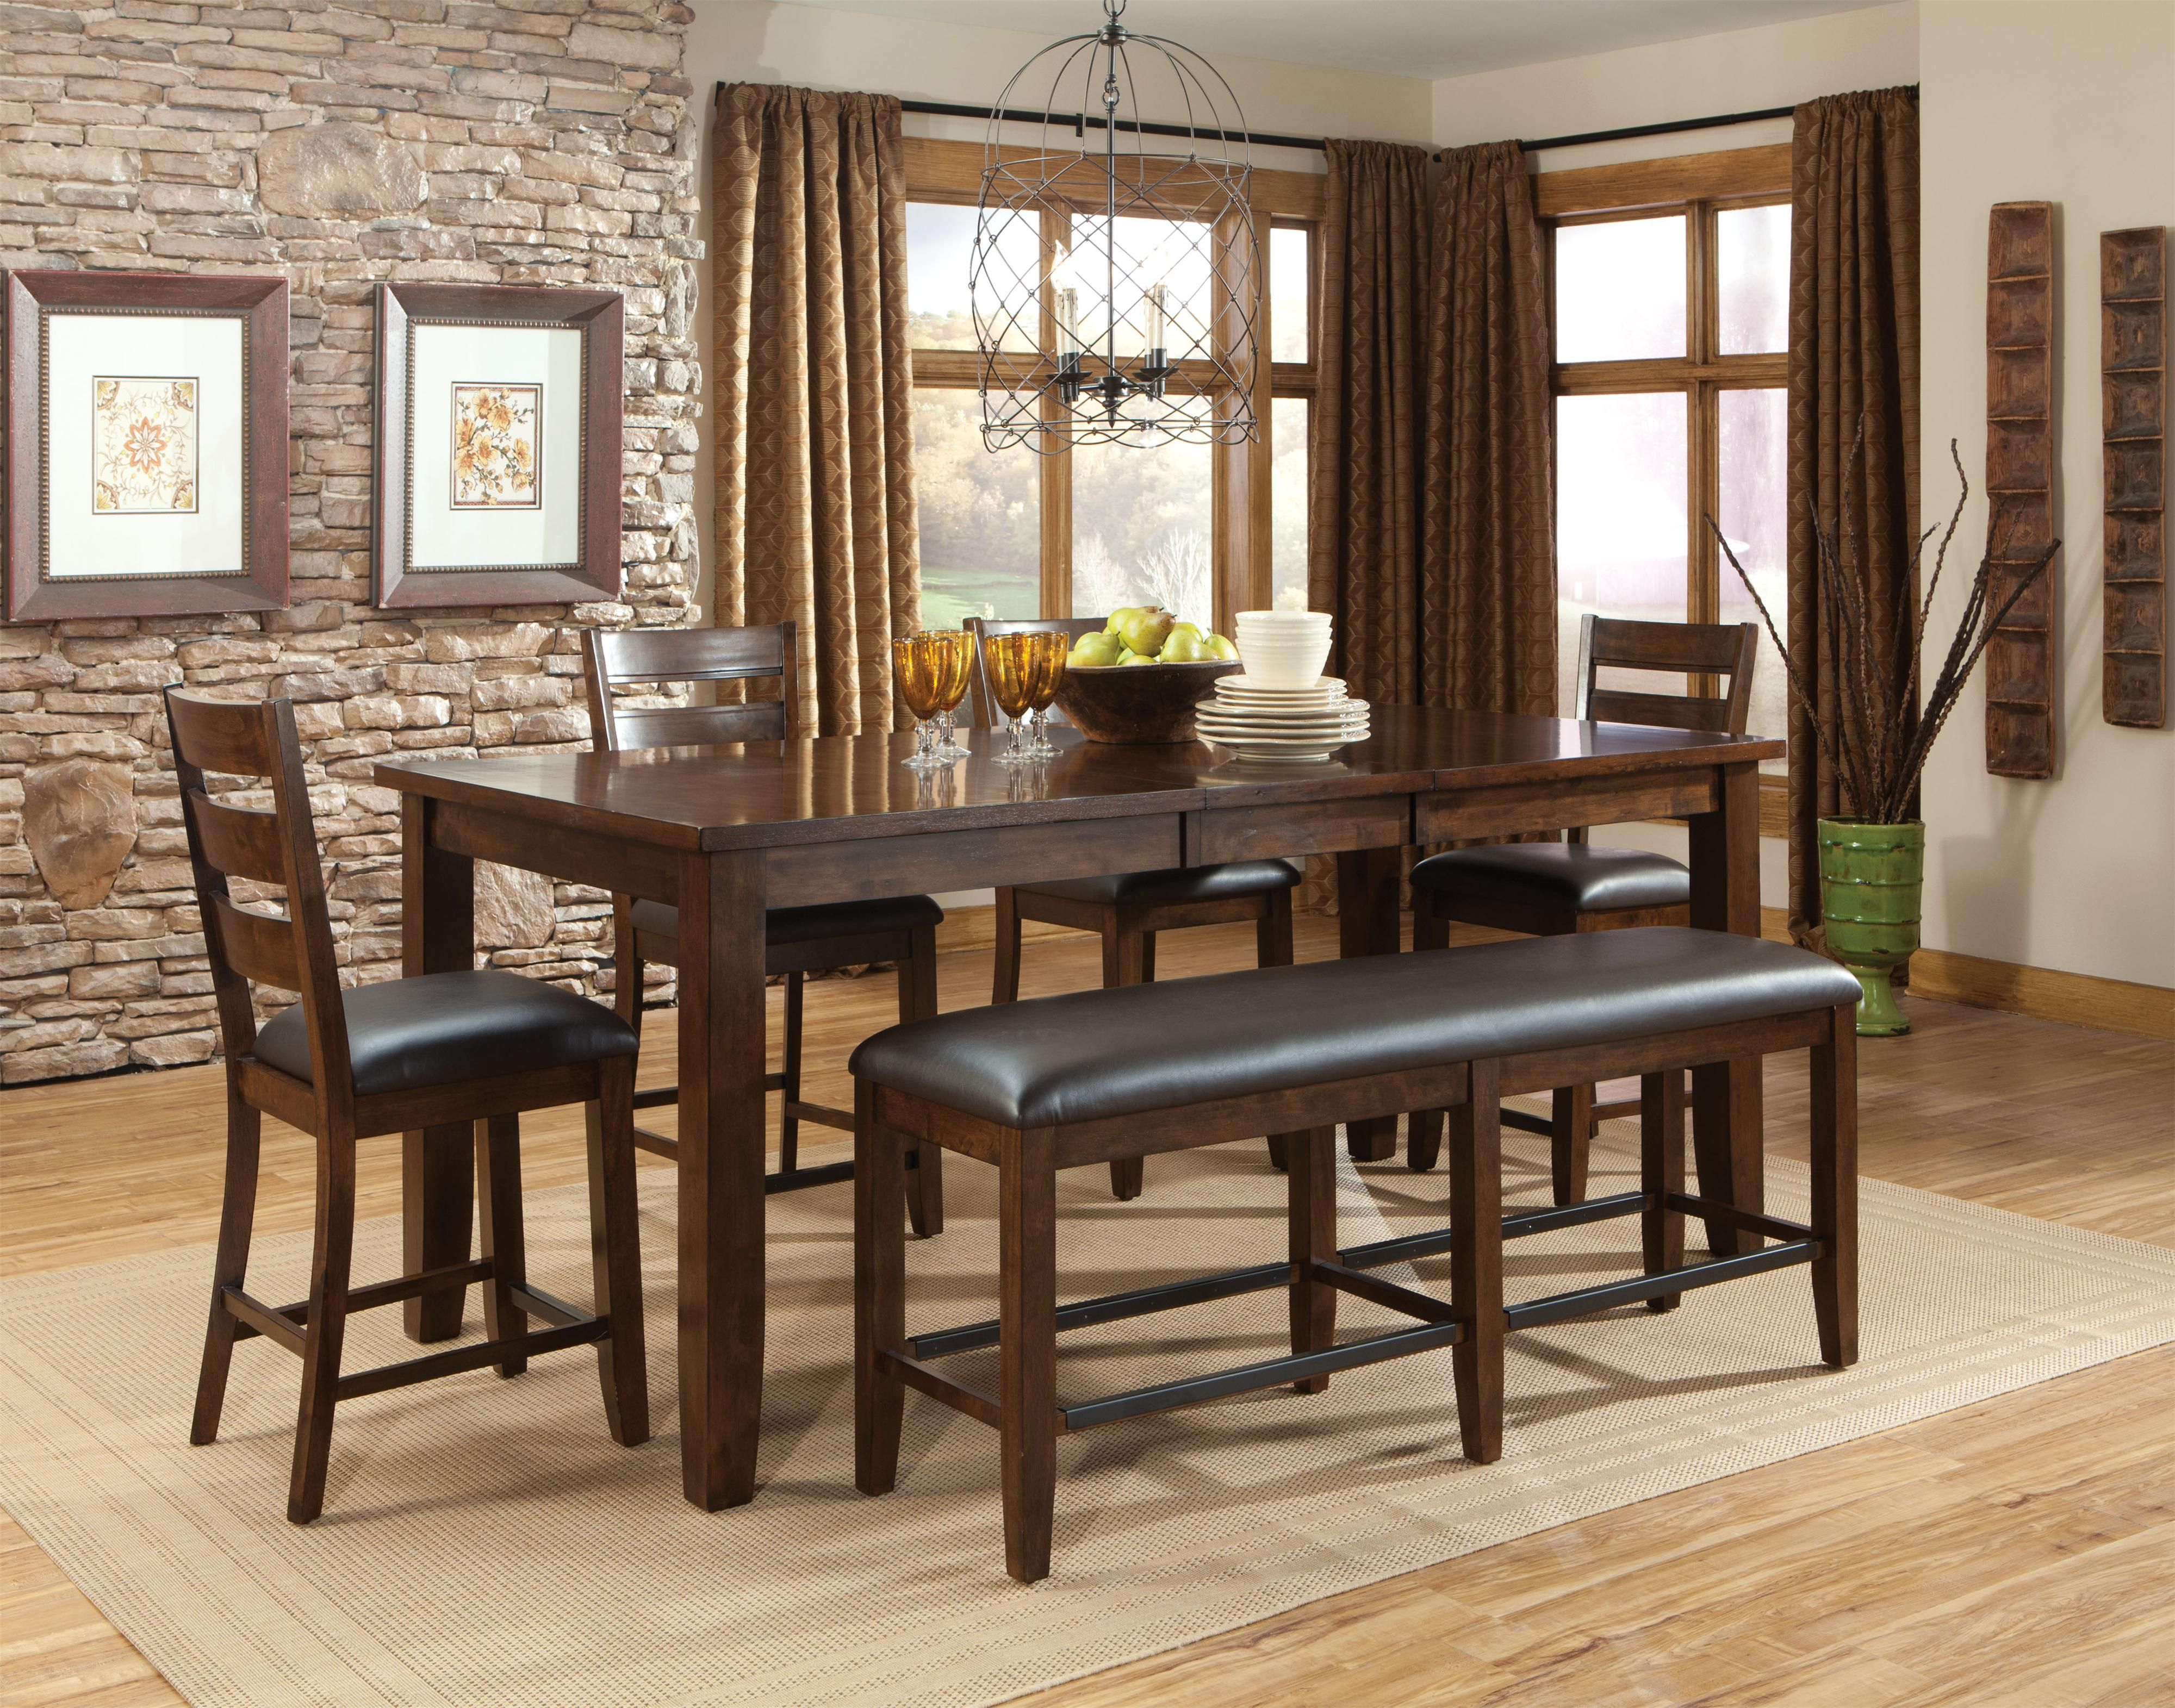 Standard Furniture Abaco Abaco Counter Height Counter Table And Chairs    Great American Home Store   Pub Table And Stool Set Memphis, TN, Southaven,  MS ...